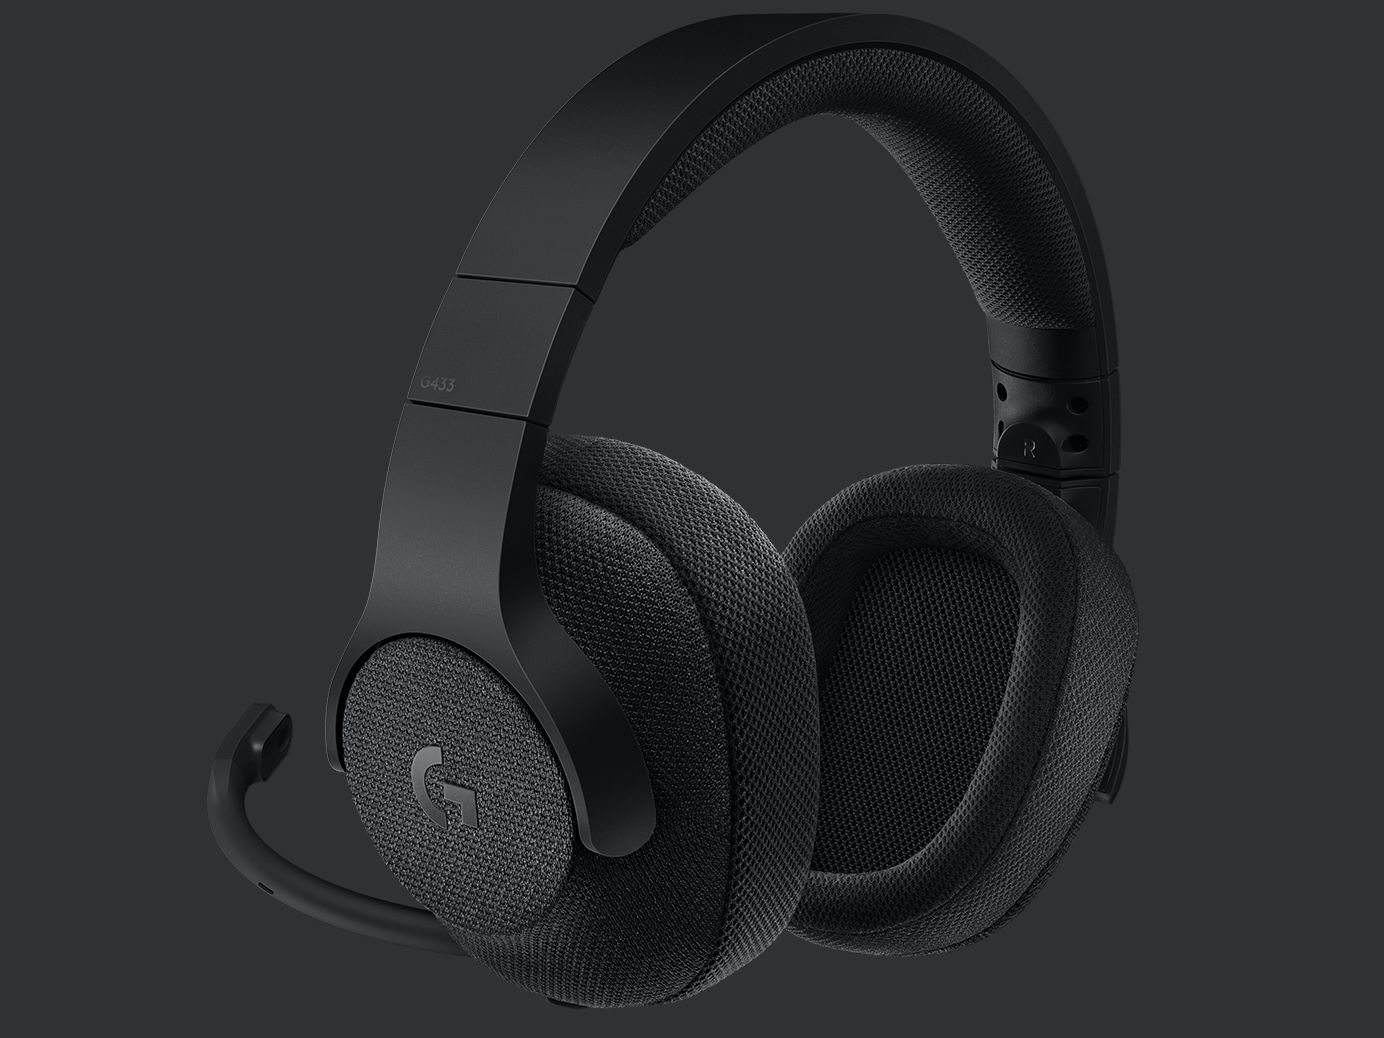 Logitech G433 7.1 Wired Surround Gaming Headset